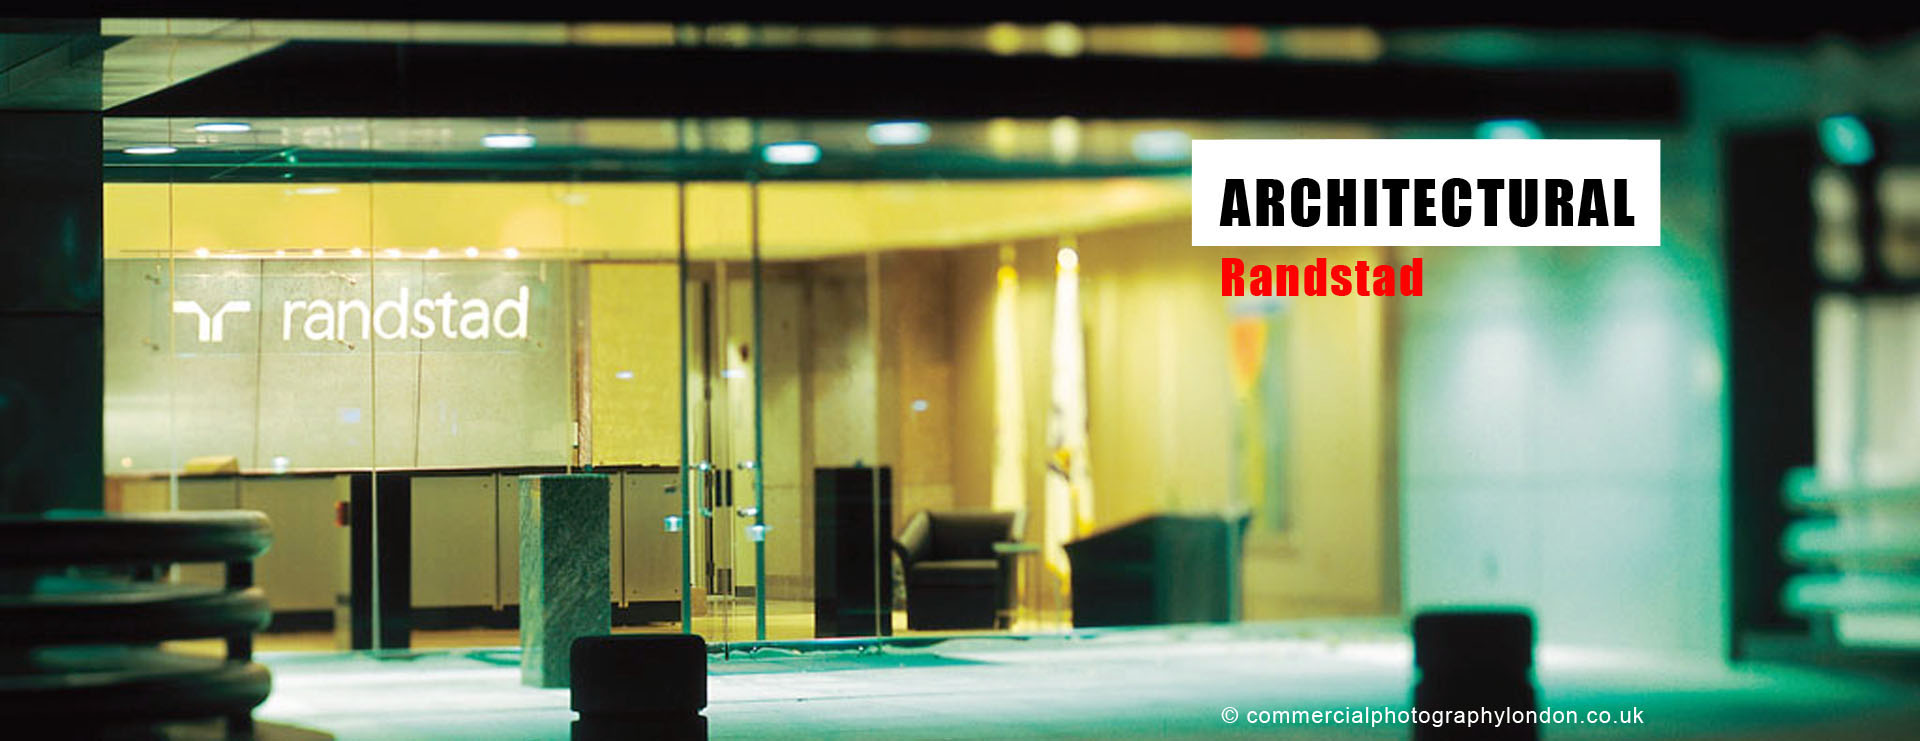 Advertising photographer London architectural photo home page.